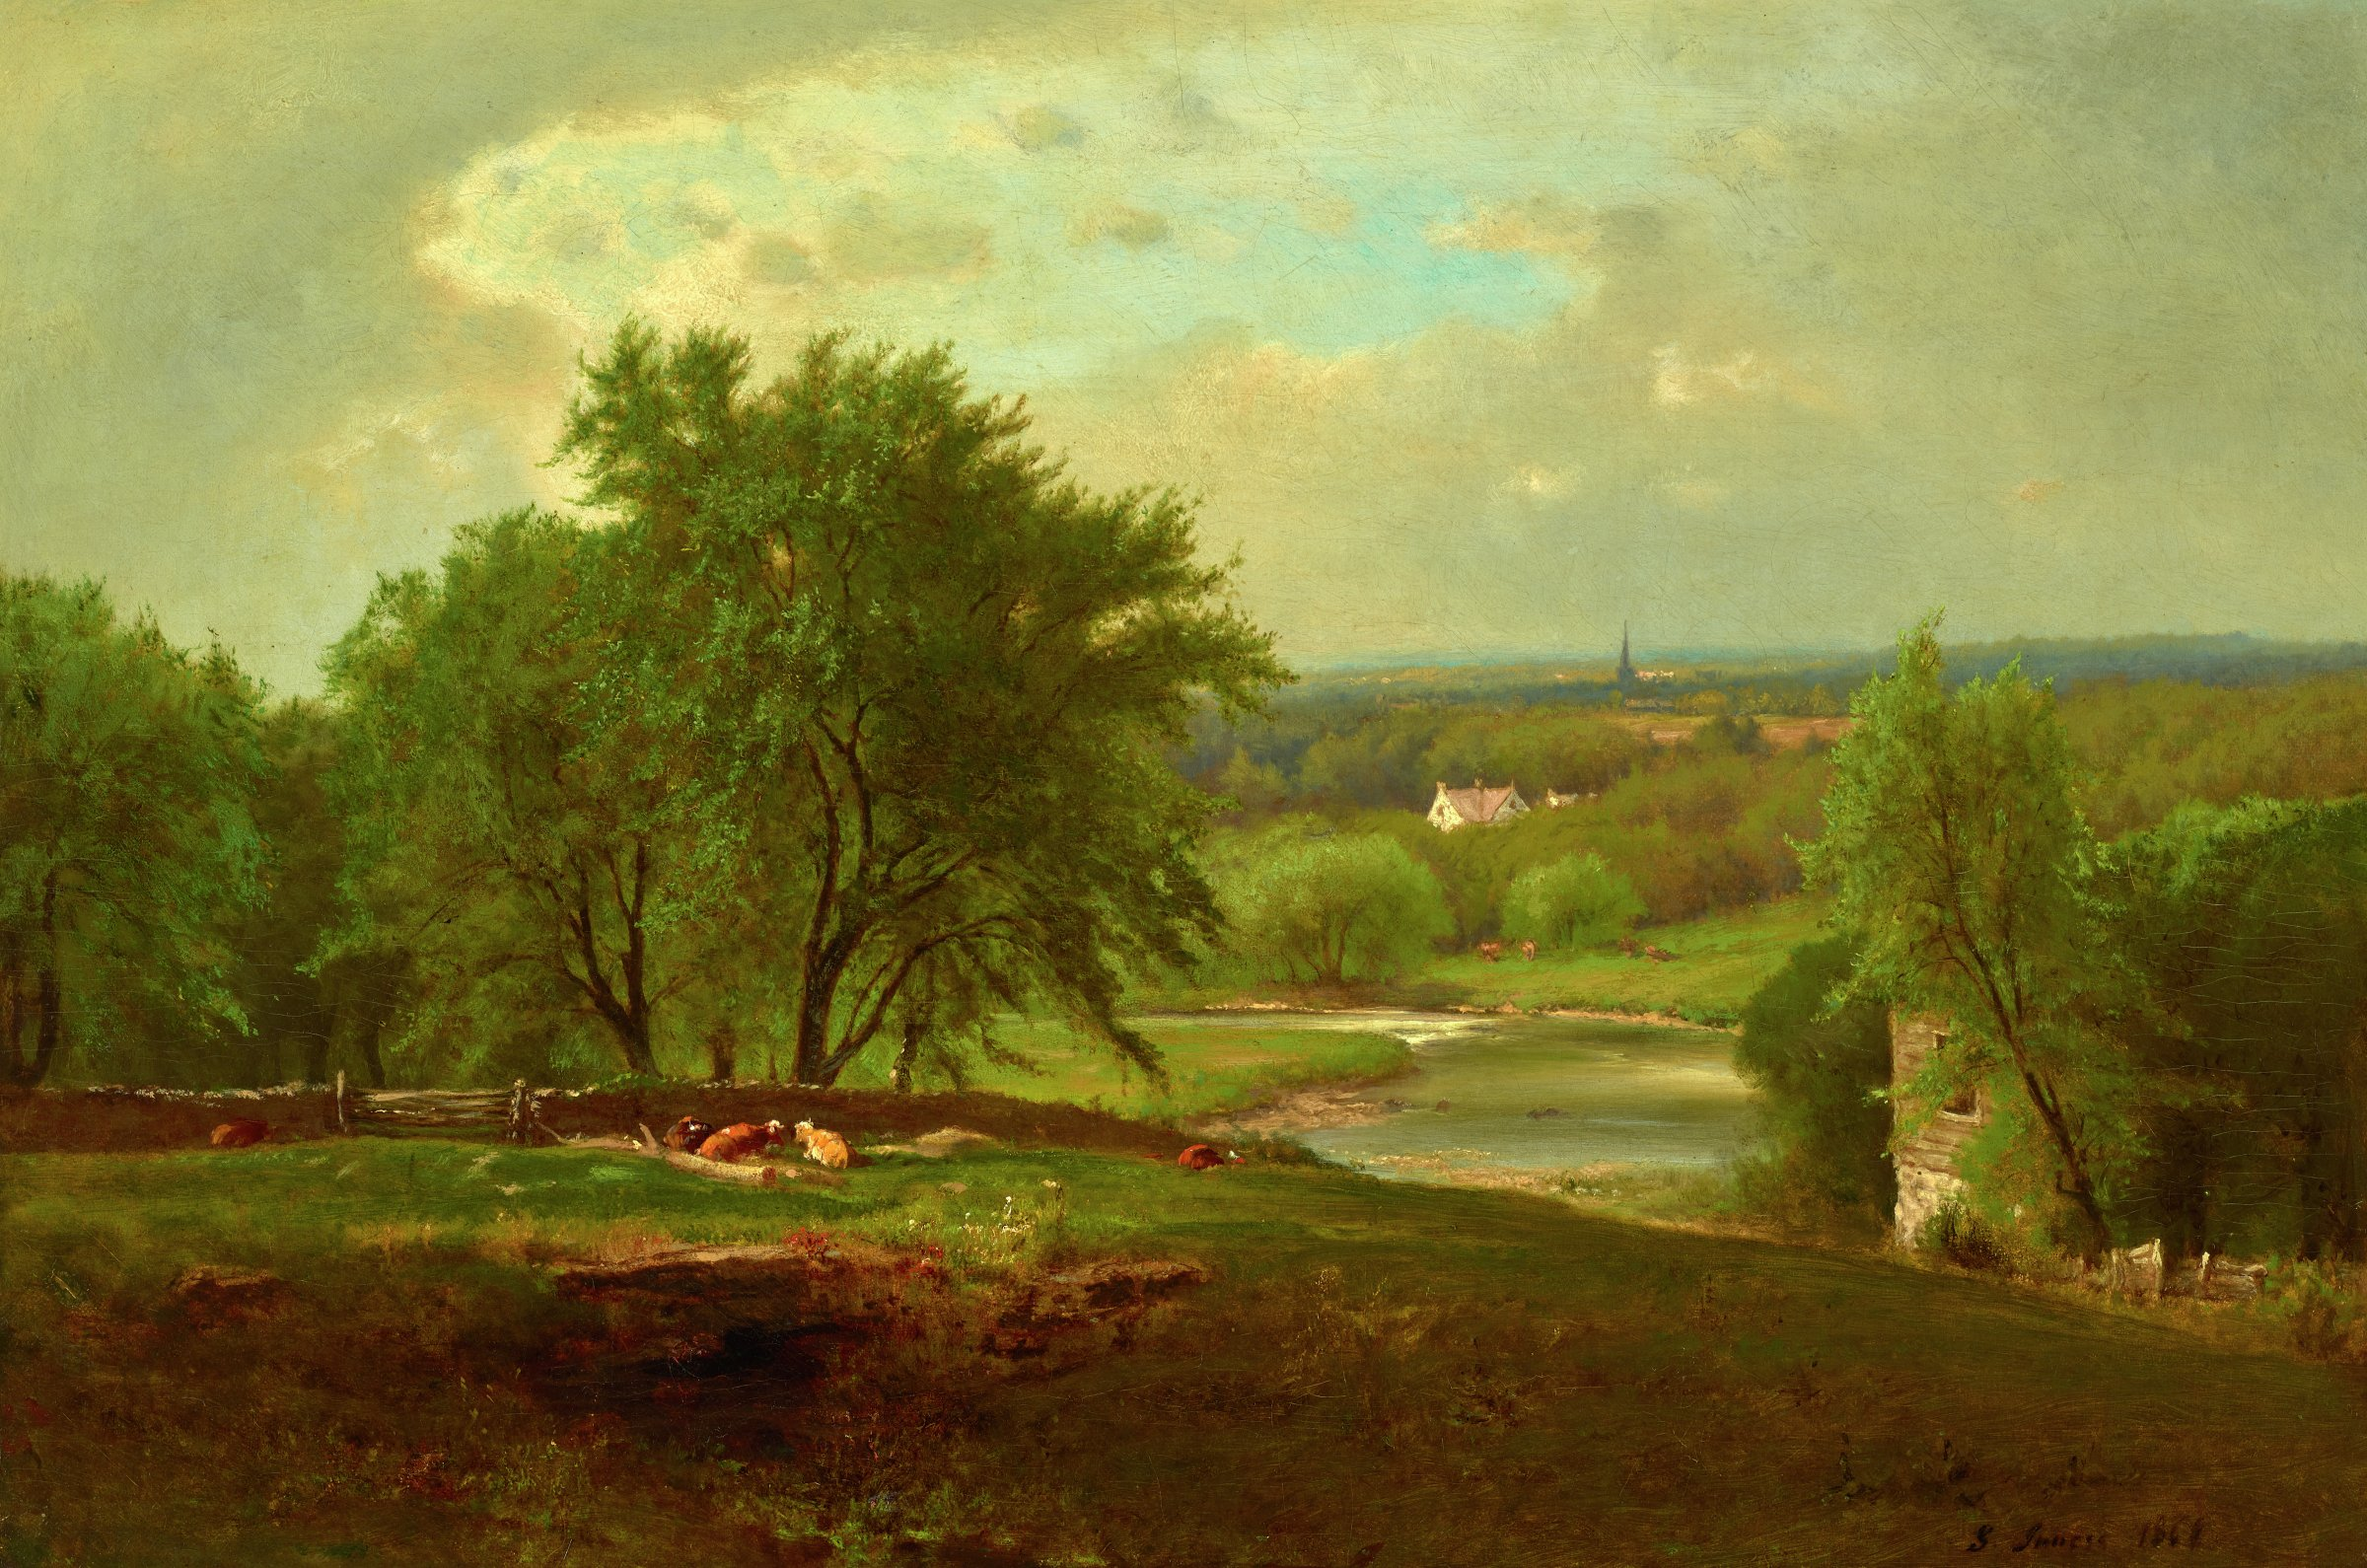 Englewood, New Jersey, George Inness, oil on canvas